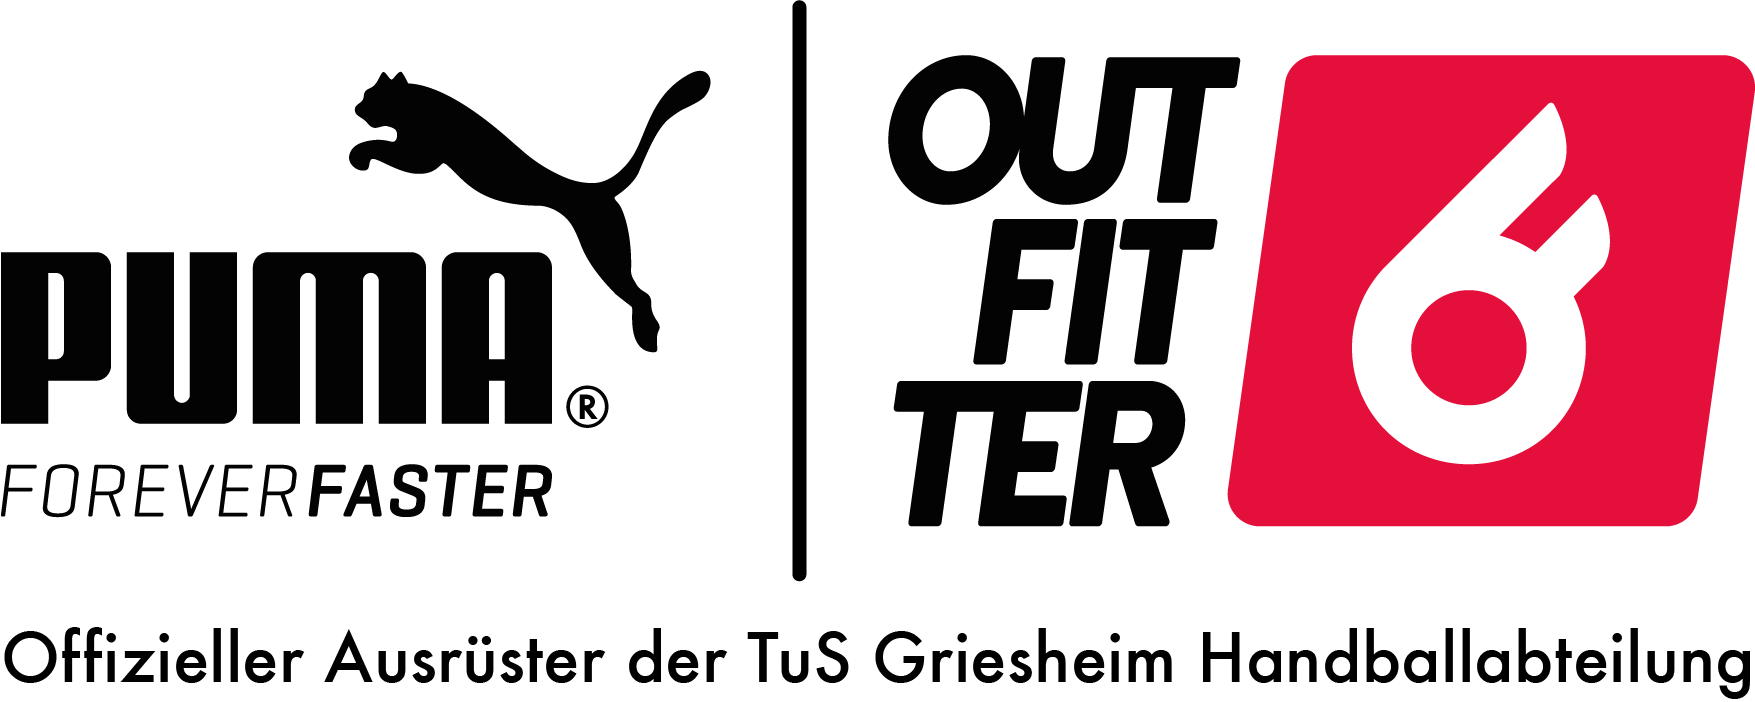 Puma_Outfitter_Logo.png